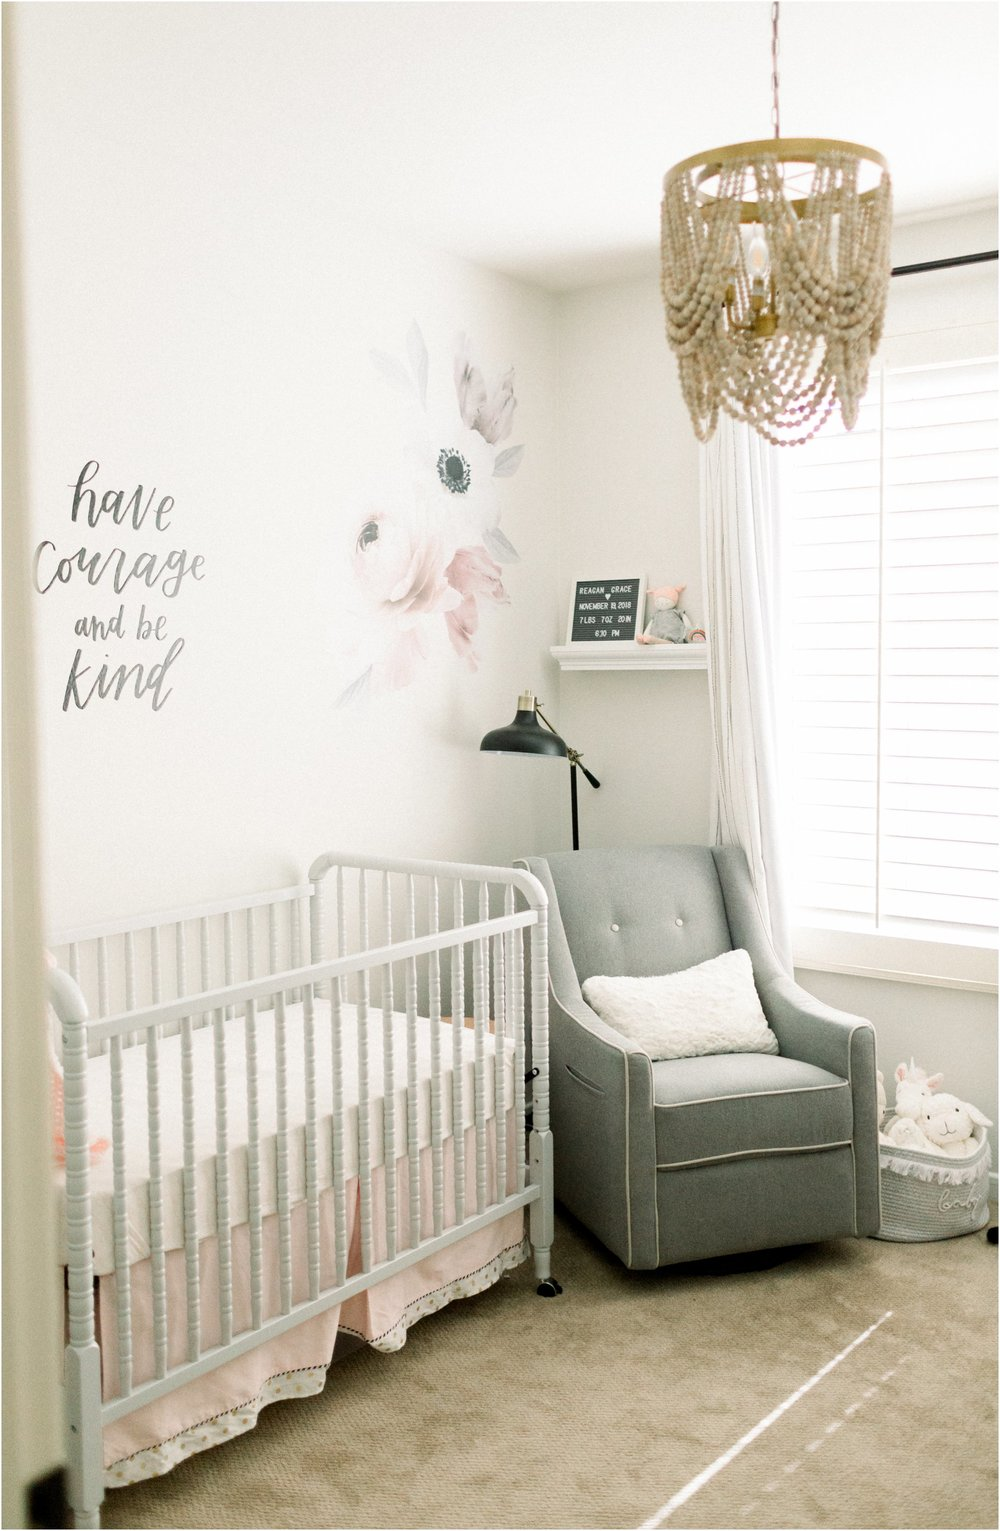 Want to know what baby registry items you can't live without? California newborn photographer Ambre Williams shares her top must-haves